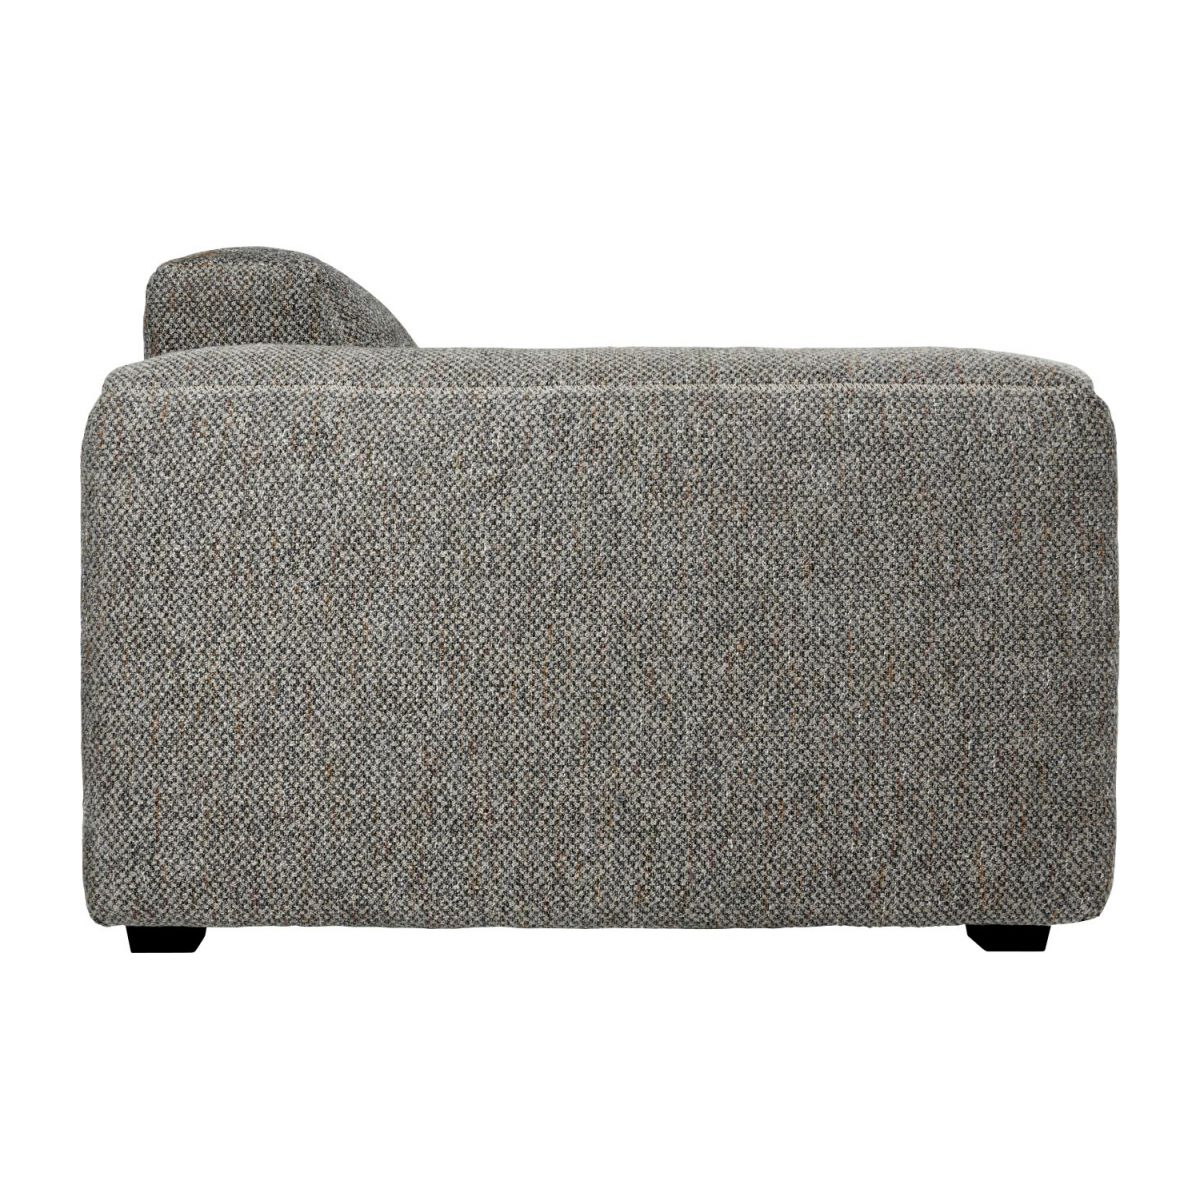 3 seater sofa in Bellagio fabric, night black n°6